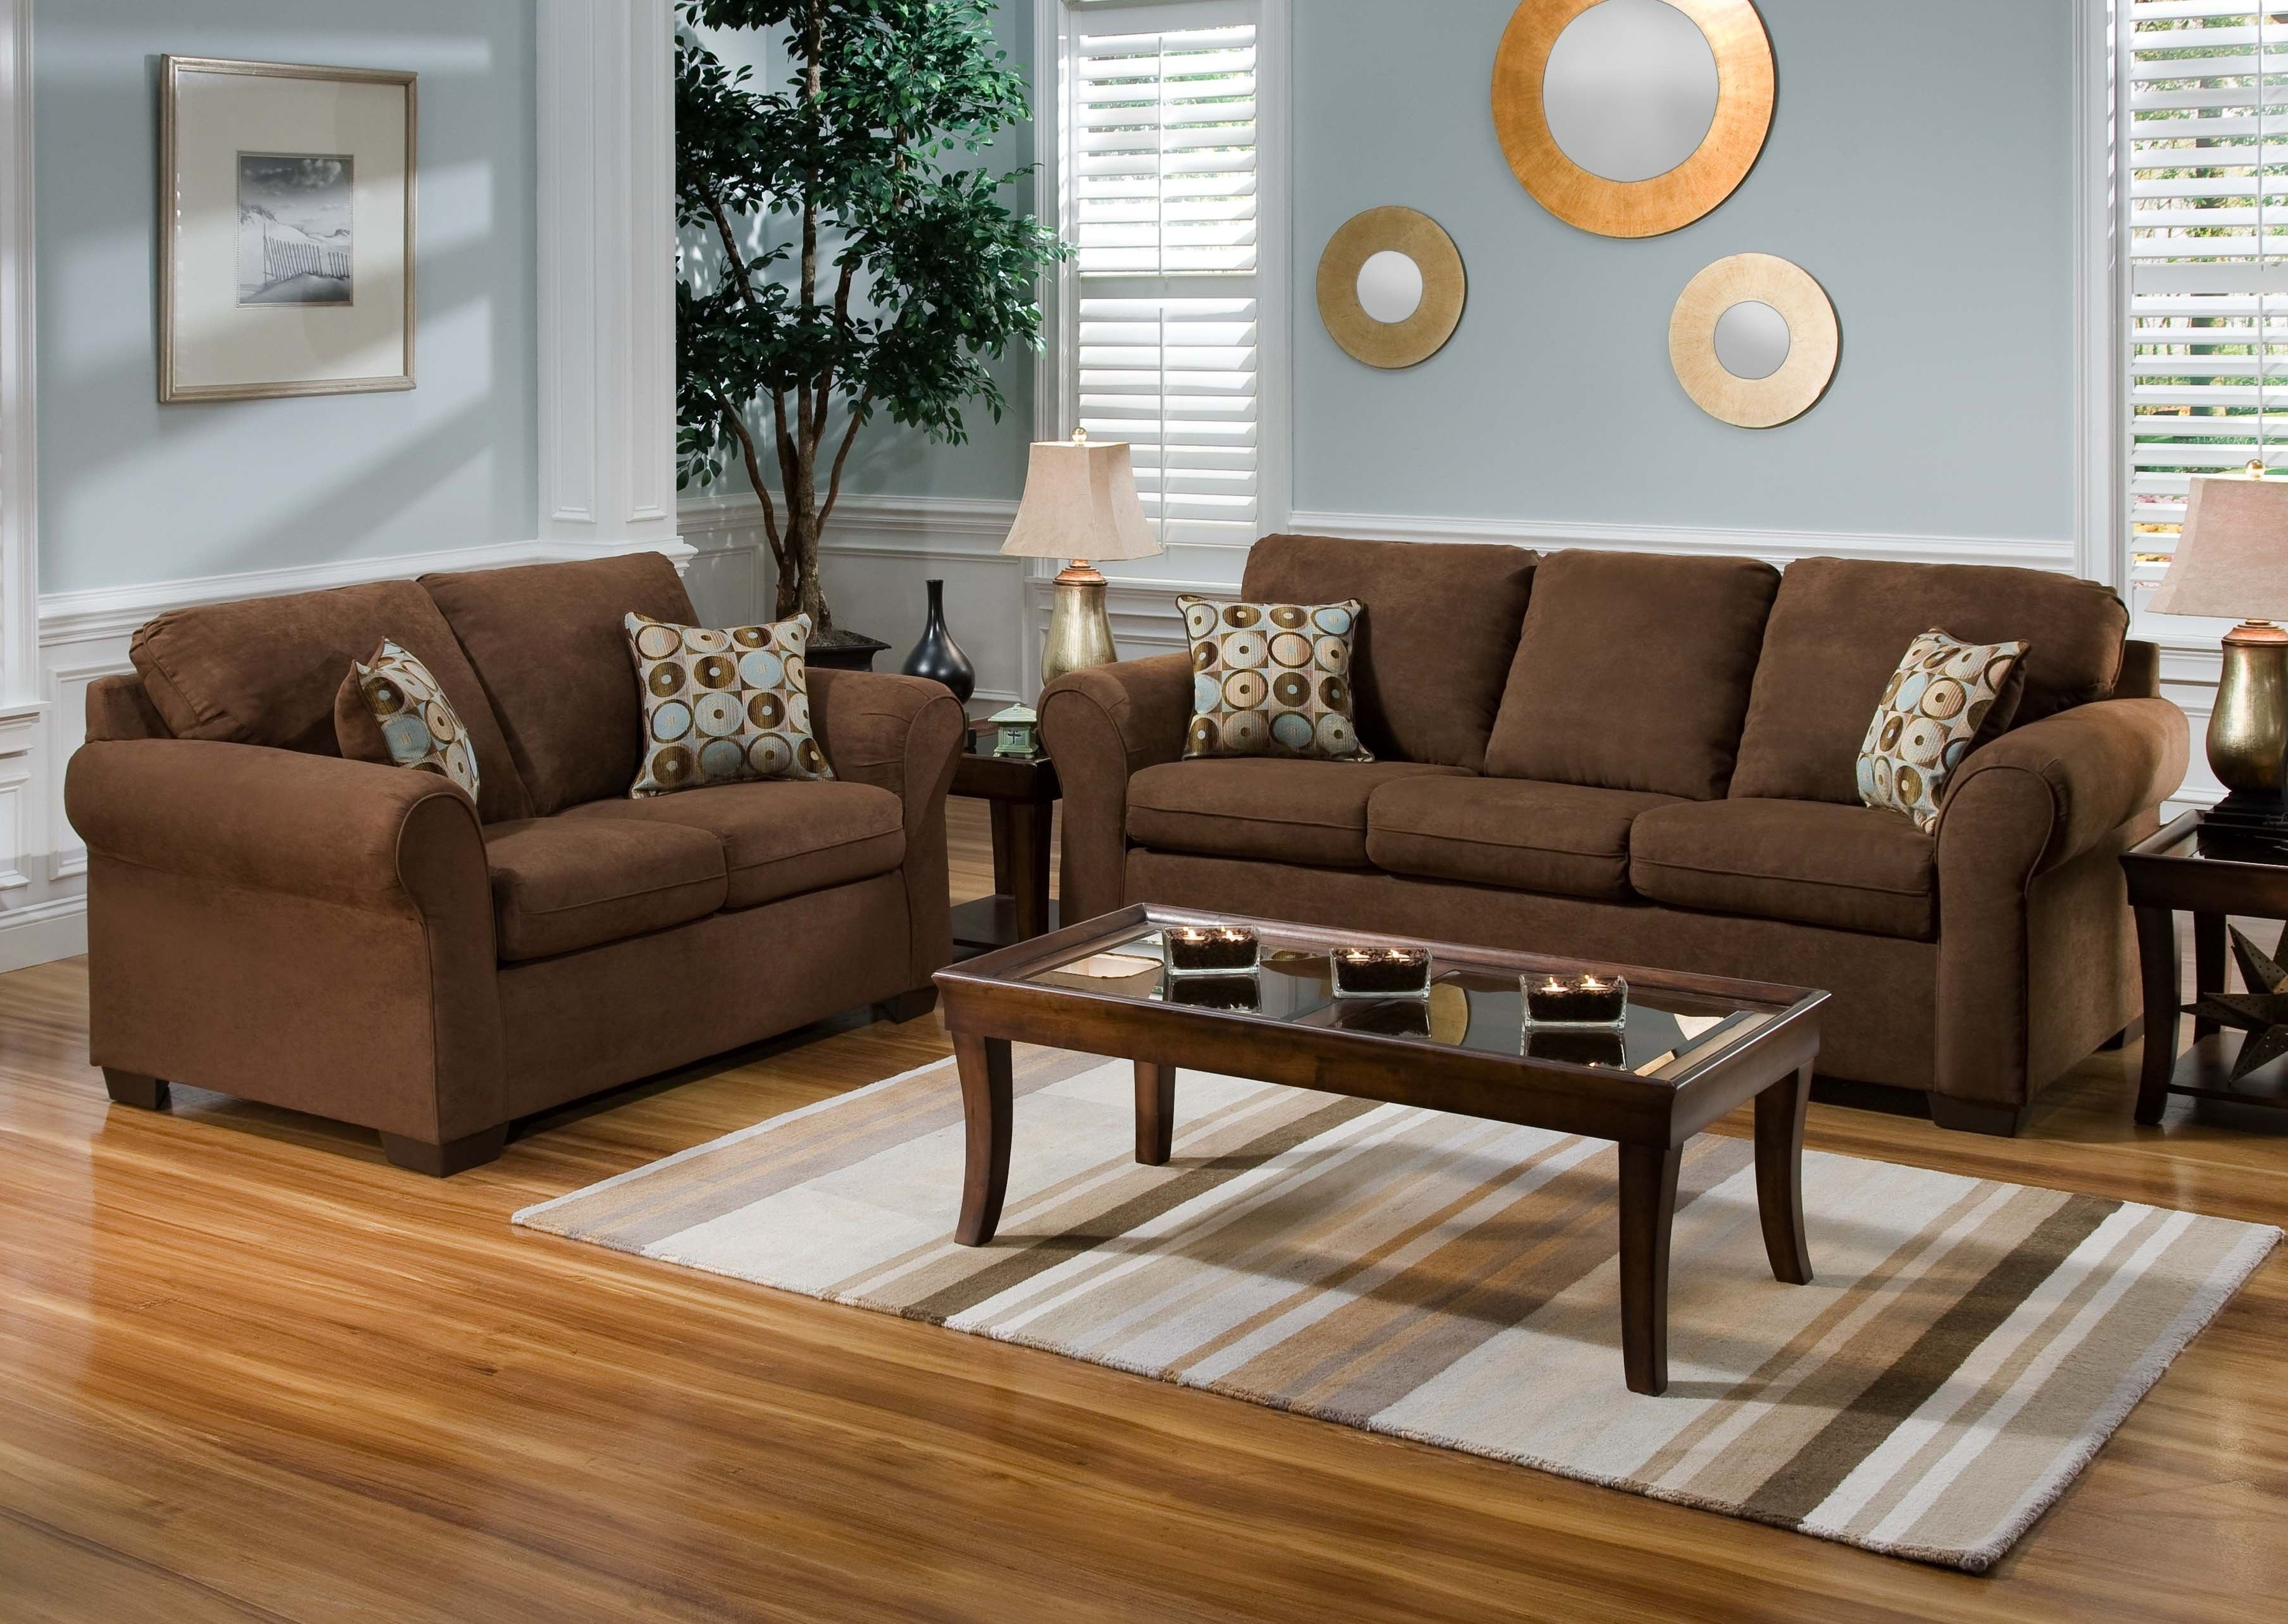 Colorful Sofas And Chairs Inside Preferred Wood Flooring Color To Complement Brown Leather And Oak Furniture (View 5 of 20)